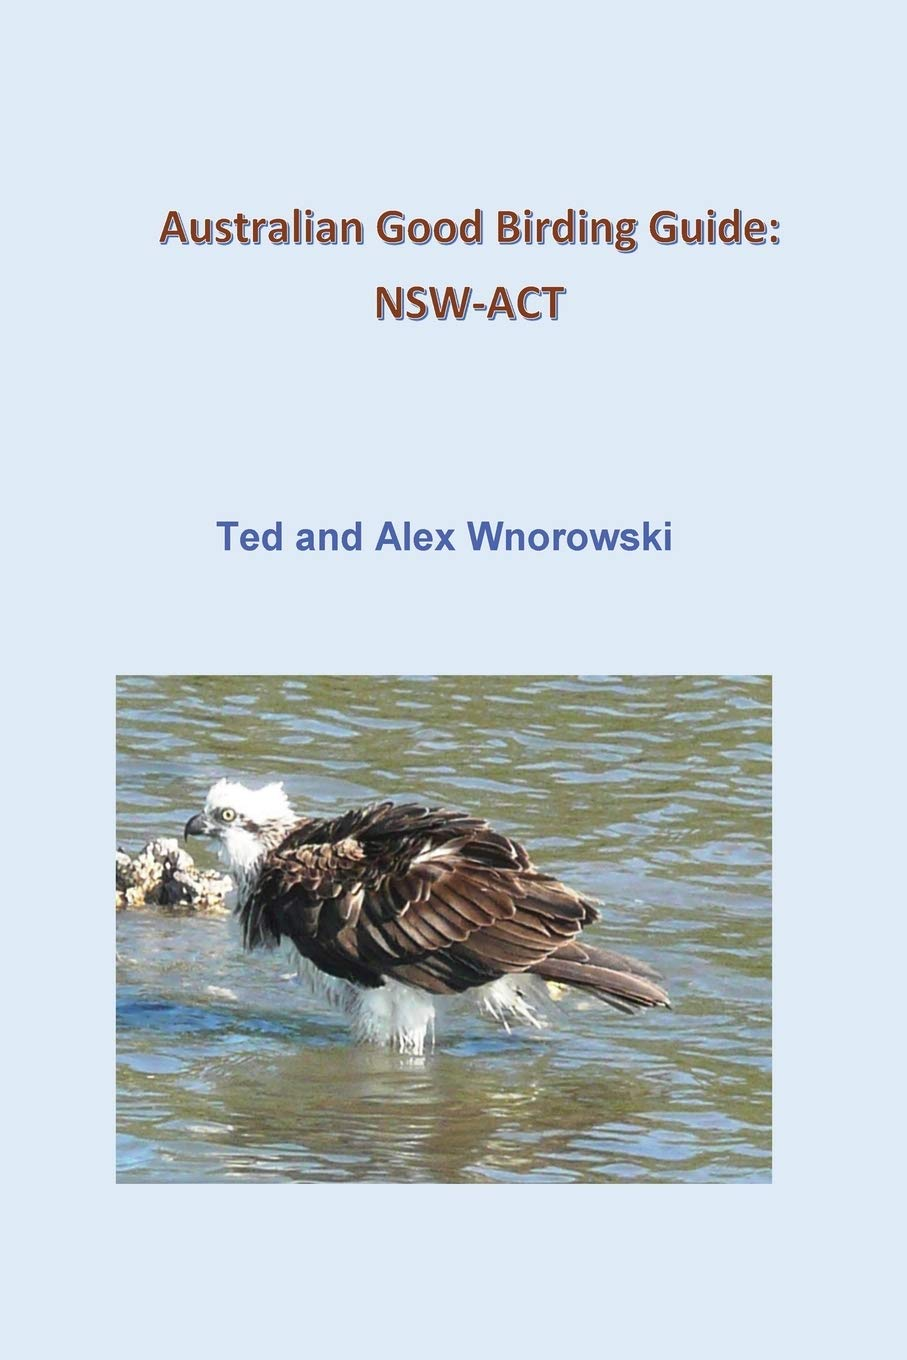 Download Australian Good Birding Guide: NSW-ACT 